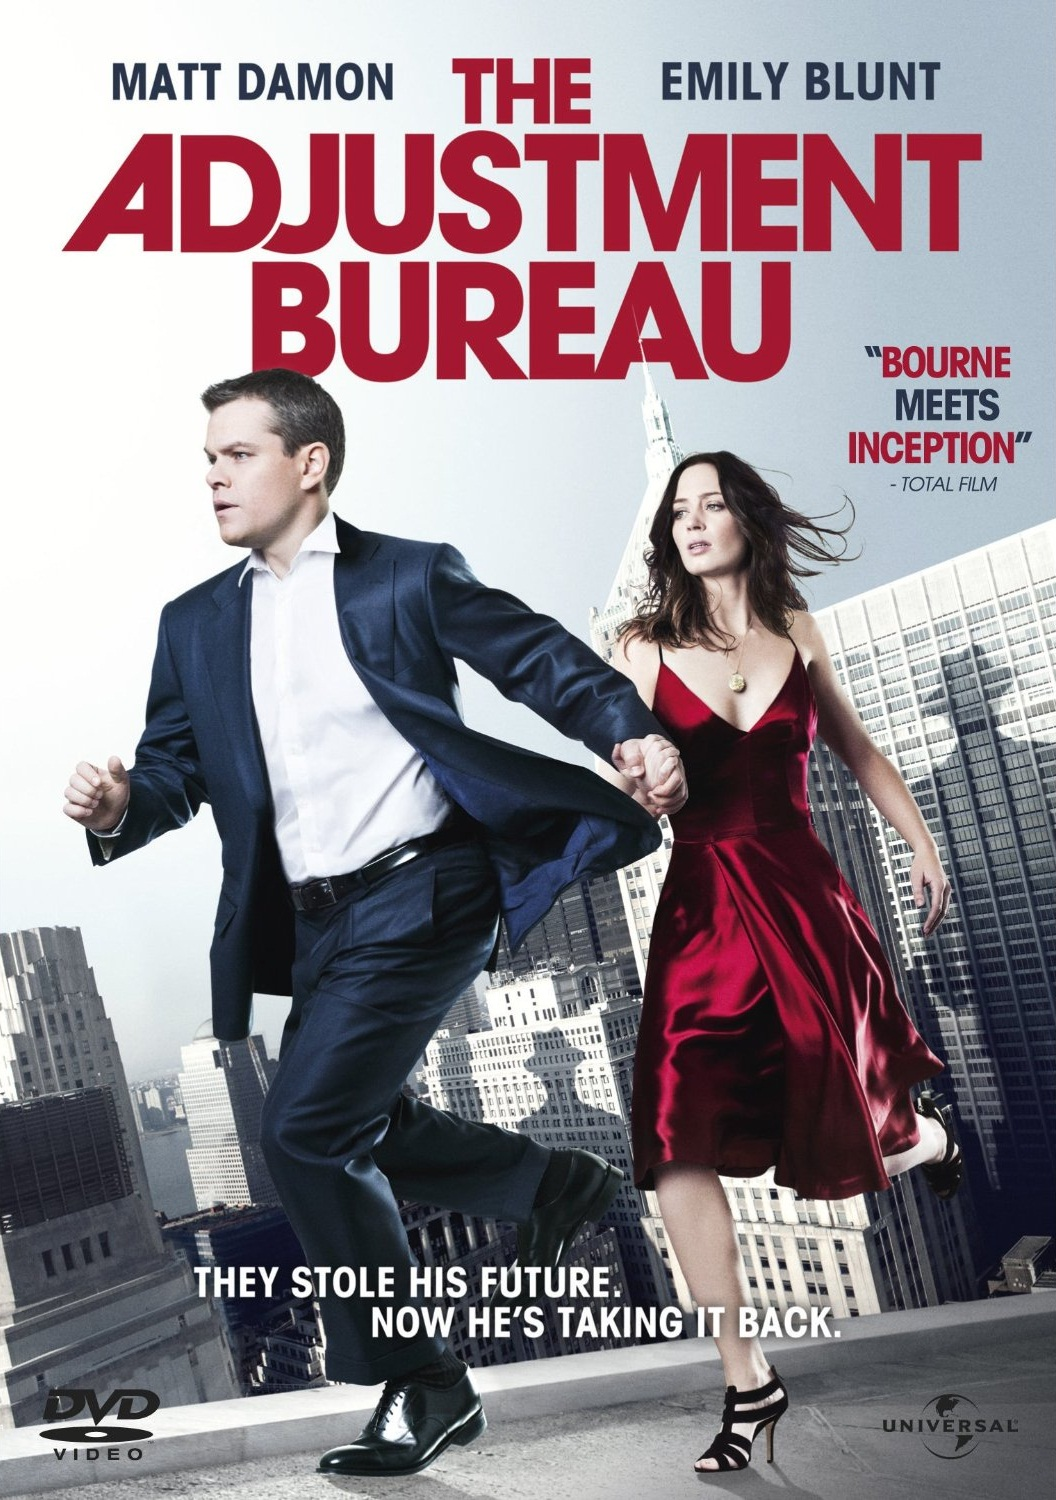 http://2.bp.blogspot.com/-Ot3L9_iKN6k/ToT1xxE5WbI/AAAAAAAAA-w/QF5QDqWW9tM/s1600/the-adjustment-bureau-dvd-cover.jpg